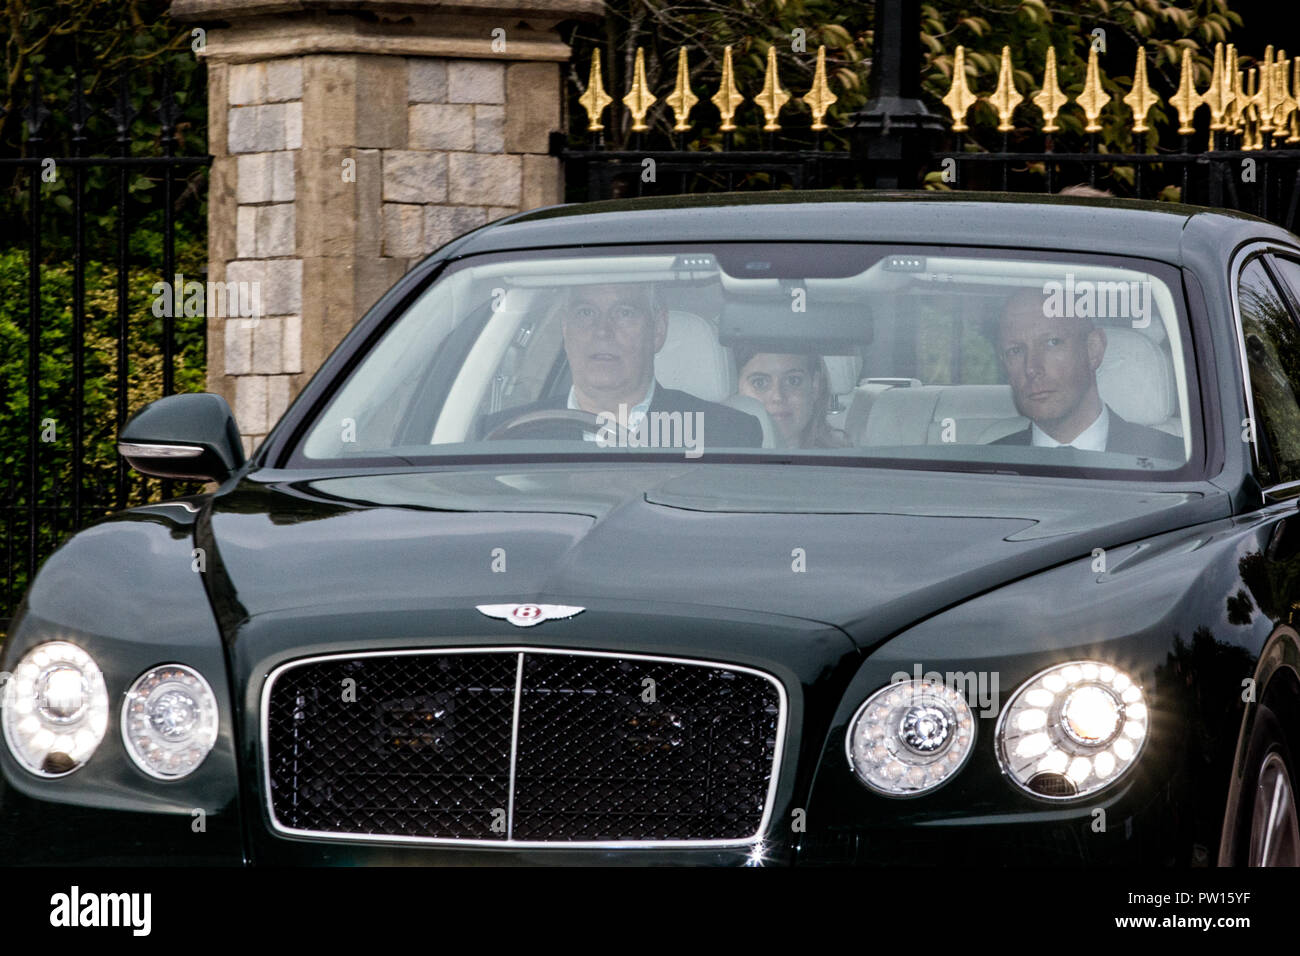 Windsor, UK. 11th October, 2018. The Duke of York and Princess Beatrice leave Windsor Castle on the eve of the wedding at St George's Chapel of Princess Eugenie and her boyfriend of around seven years Jack Brooksbank. Credit: Mark Kerrison/Alamy Live News - Stock Image